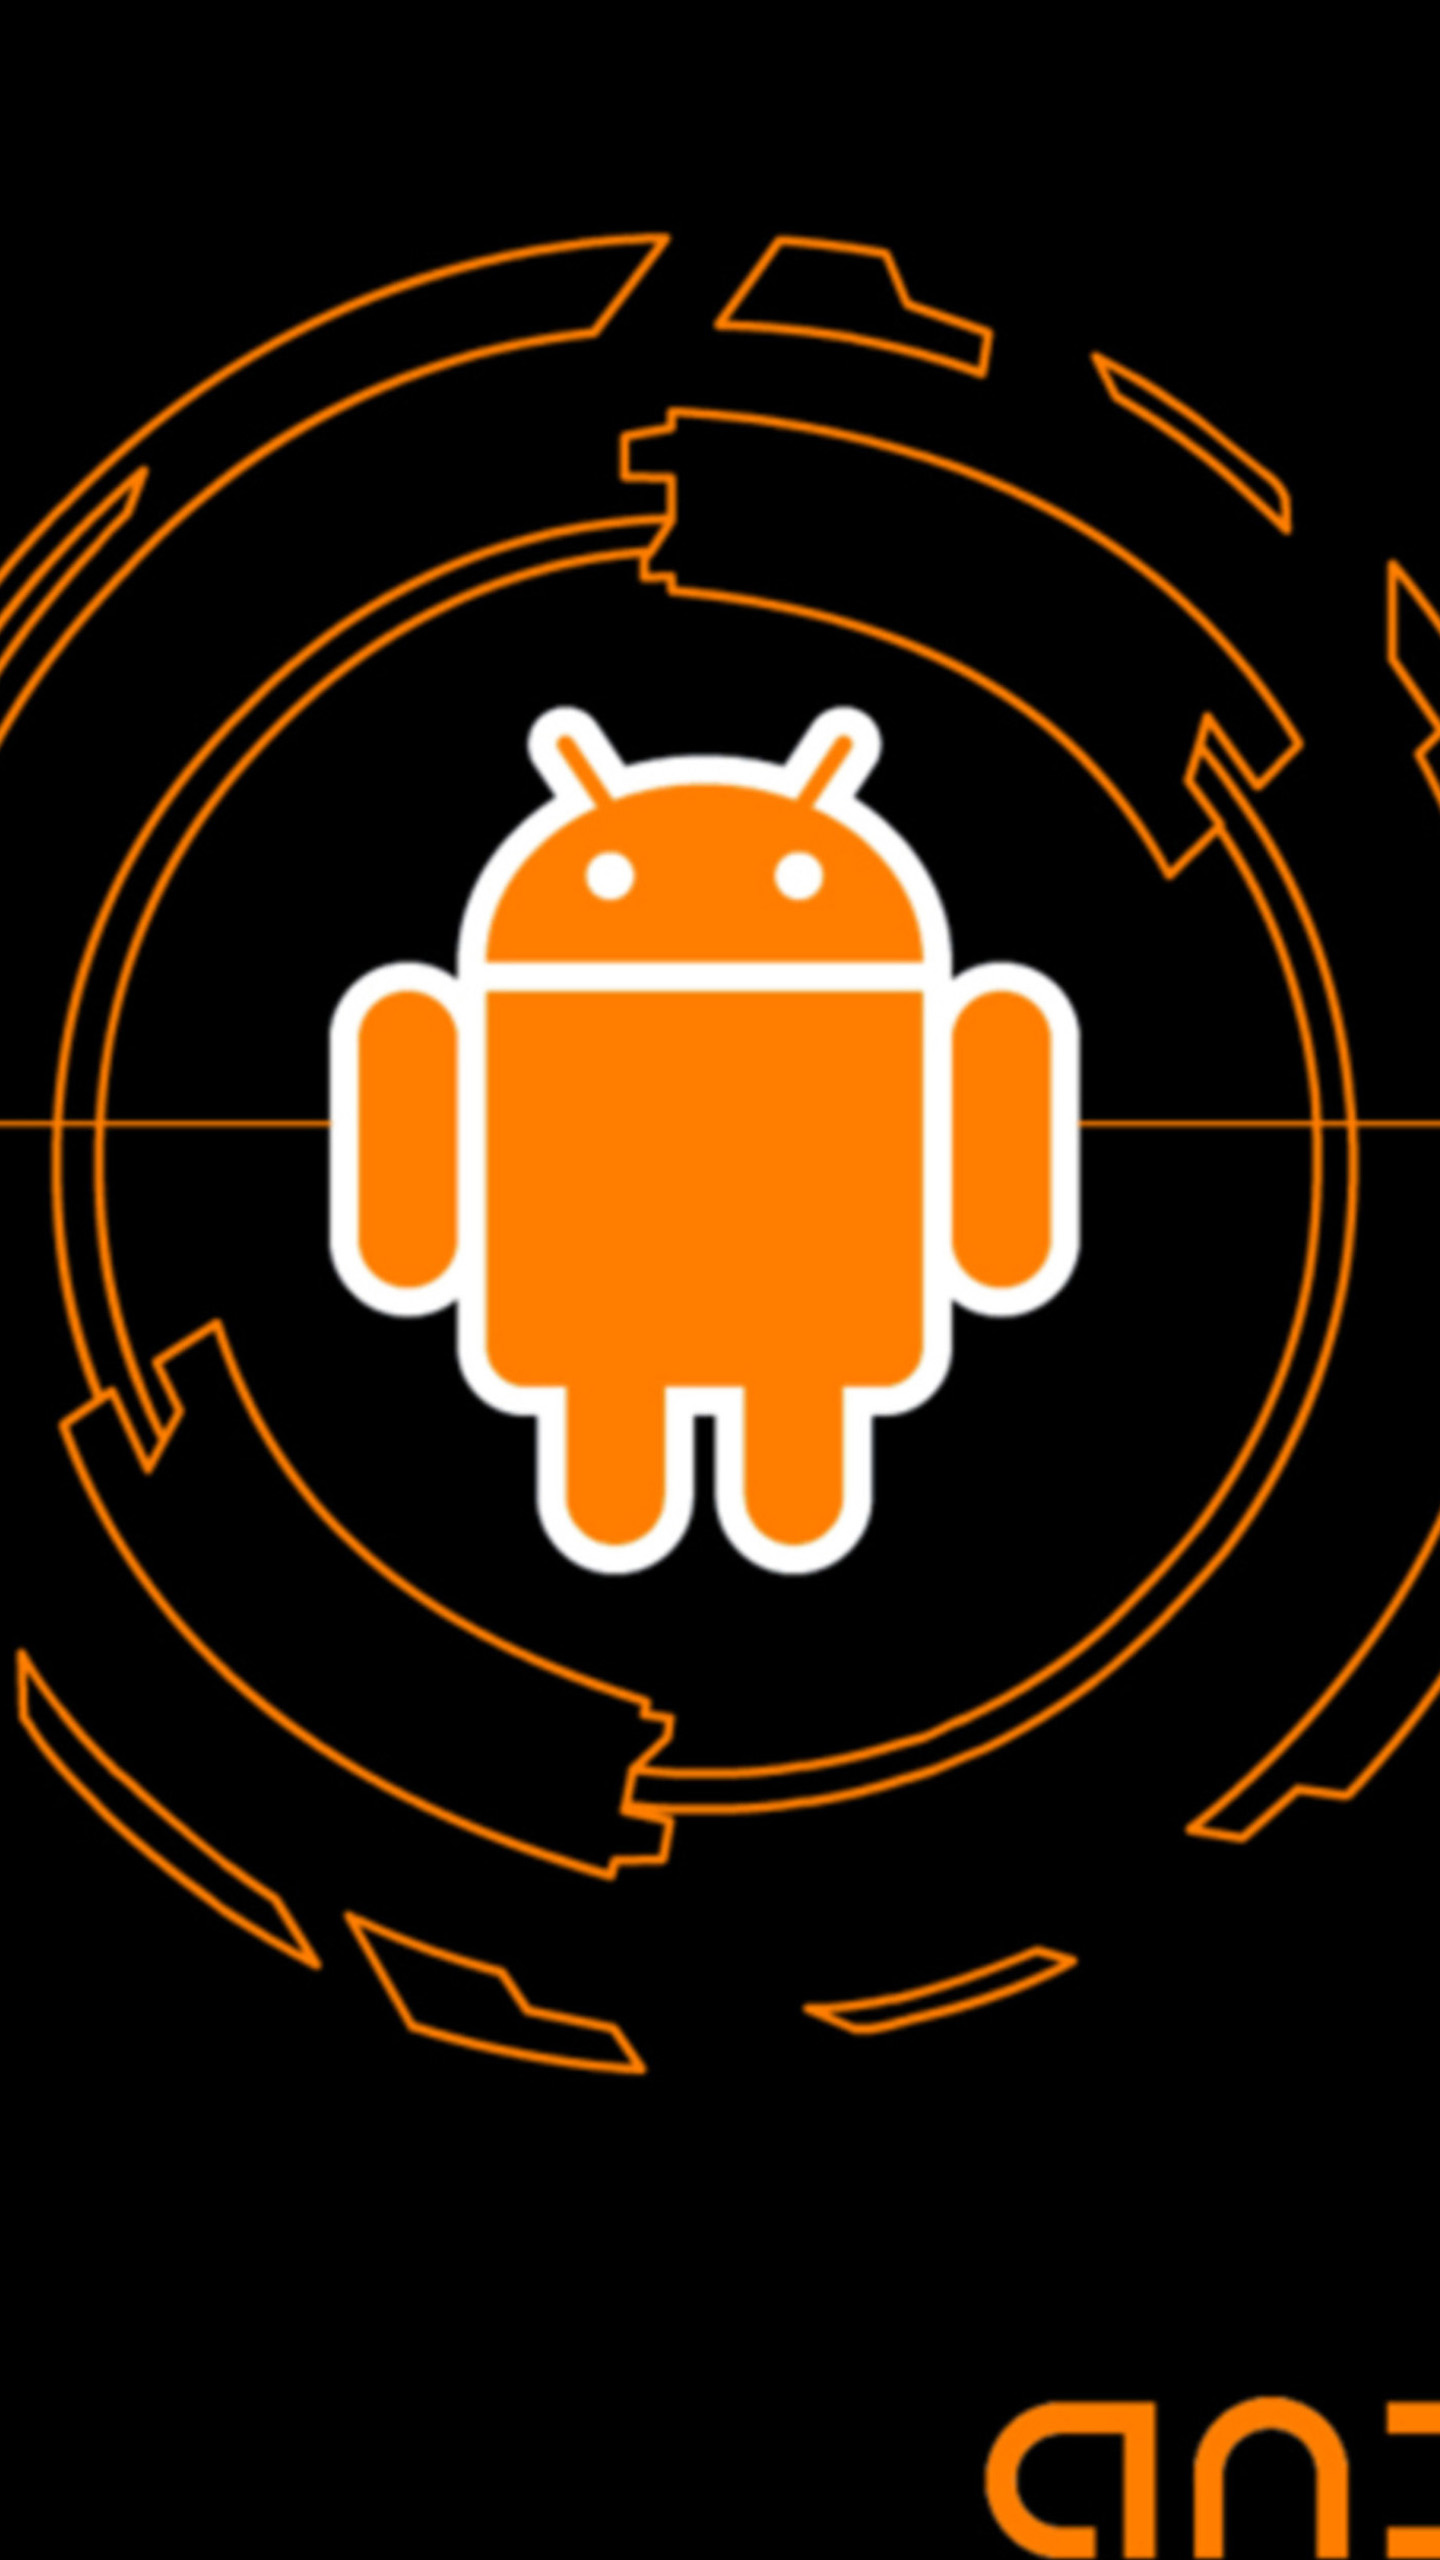 Android Logo Hd Wallpaper , (36+) Pictures.